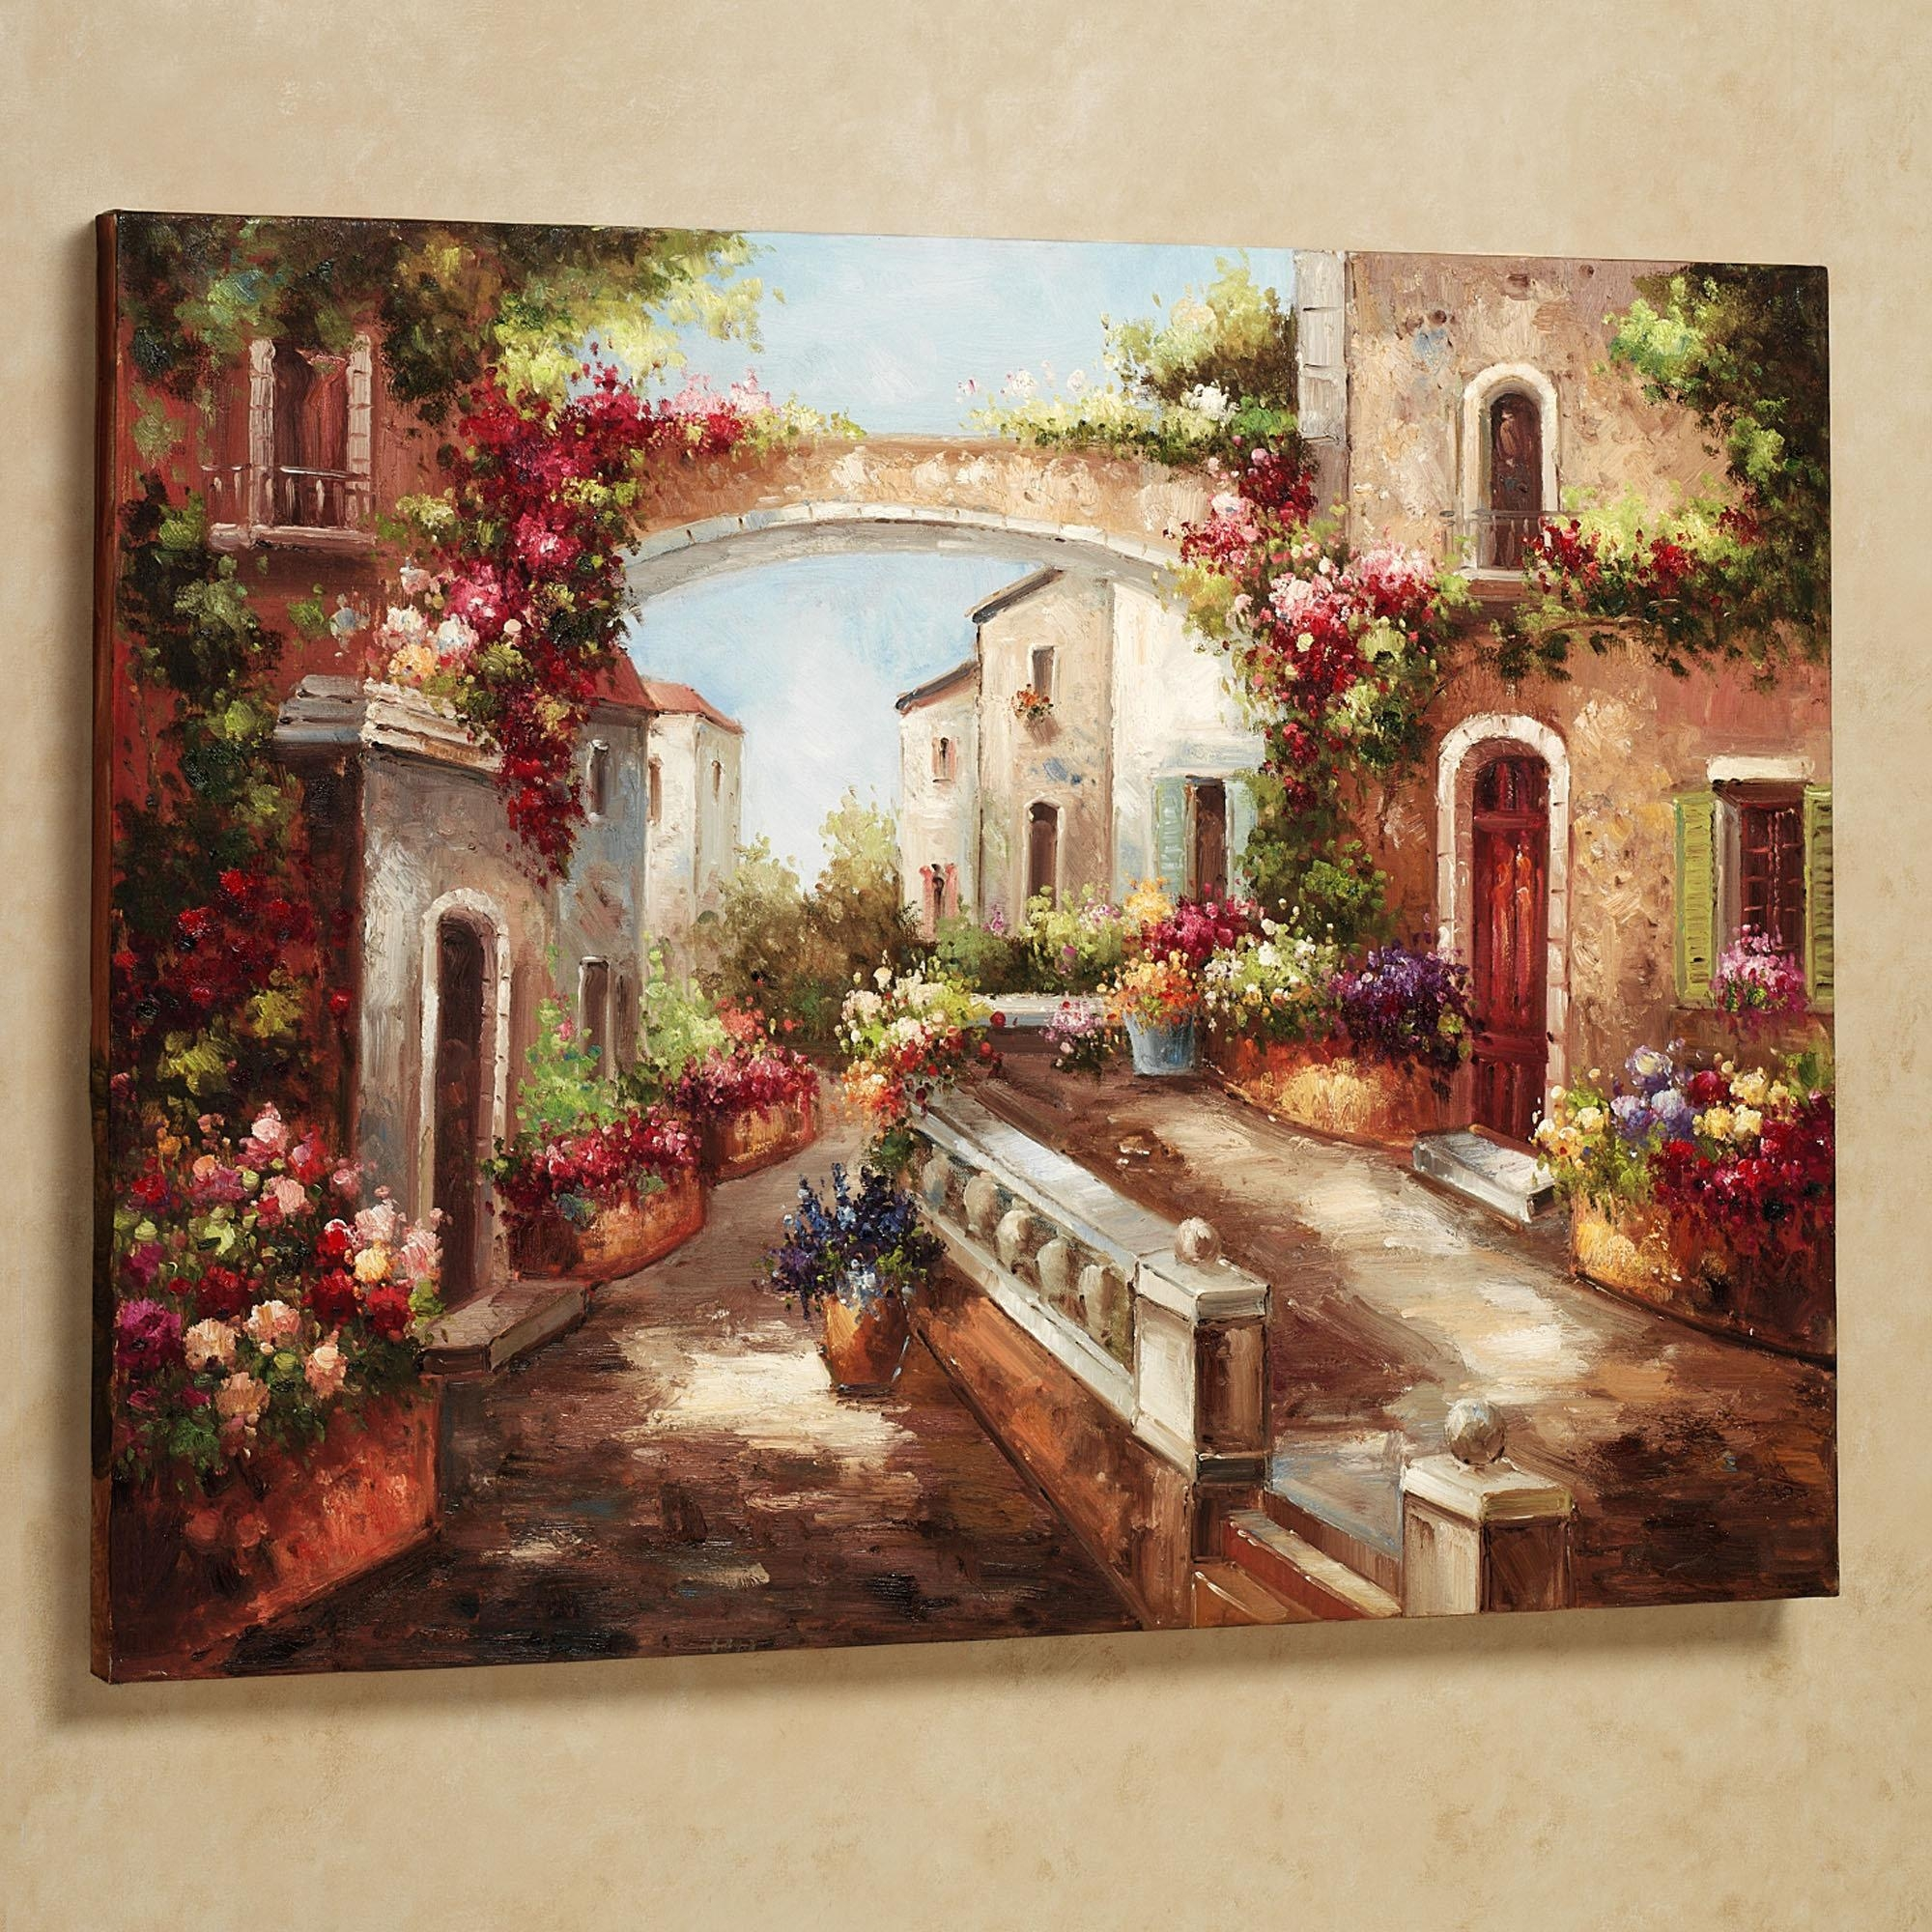 Wall Art Designs: Tuscan Wall Art Old Prints With Stylish New Ones Pertaining To Italian Wall Art Prints (View 4 of 20)